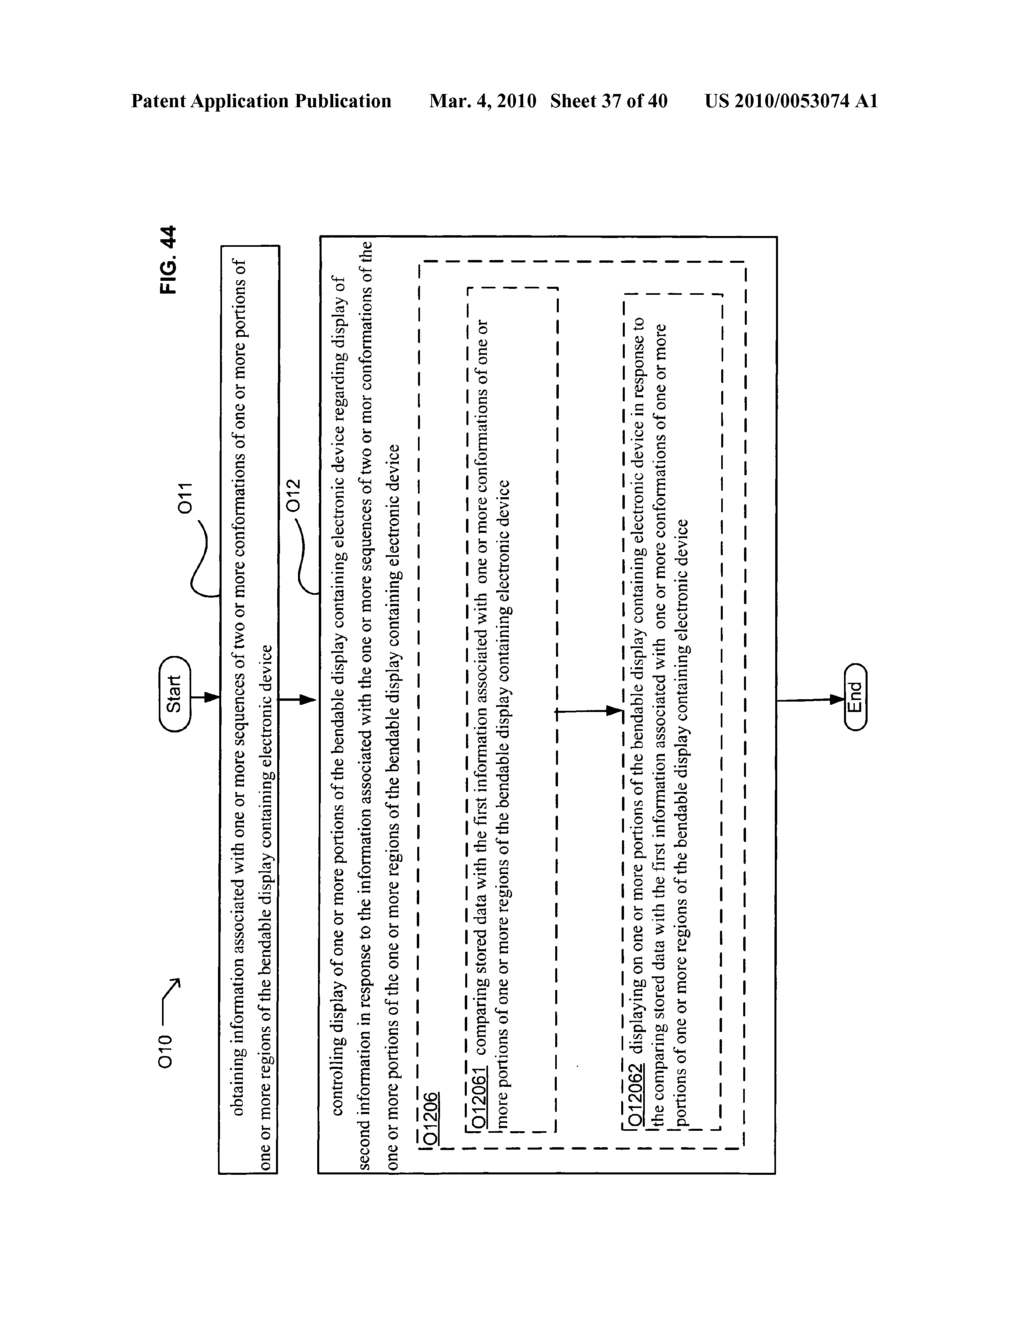 Display control based on bendable display containing electronic device conformation sequence status - diagram, schematic, and image 38